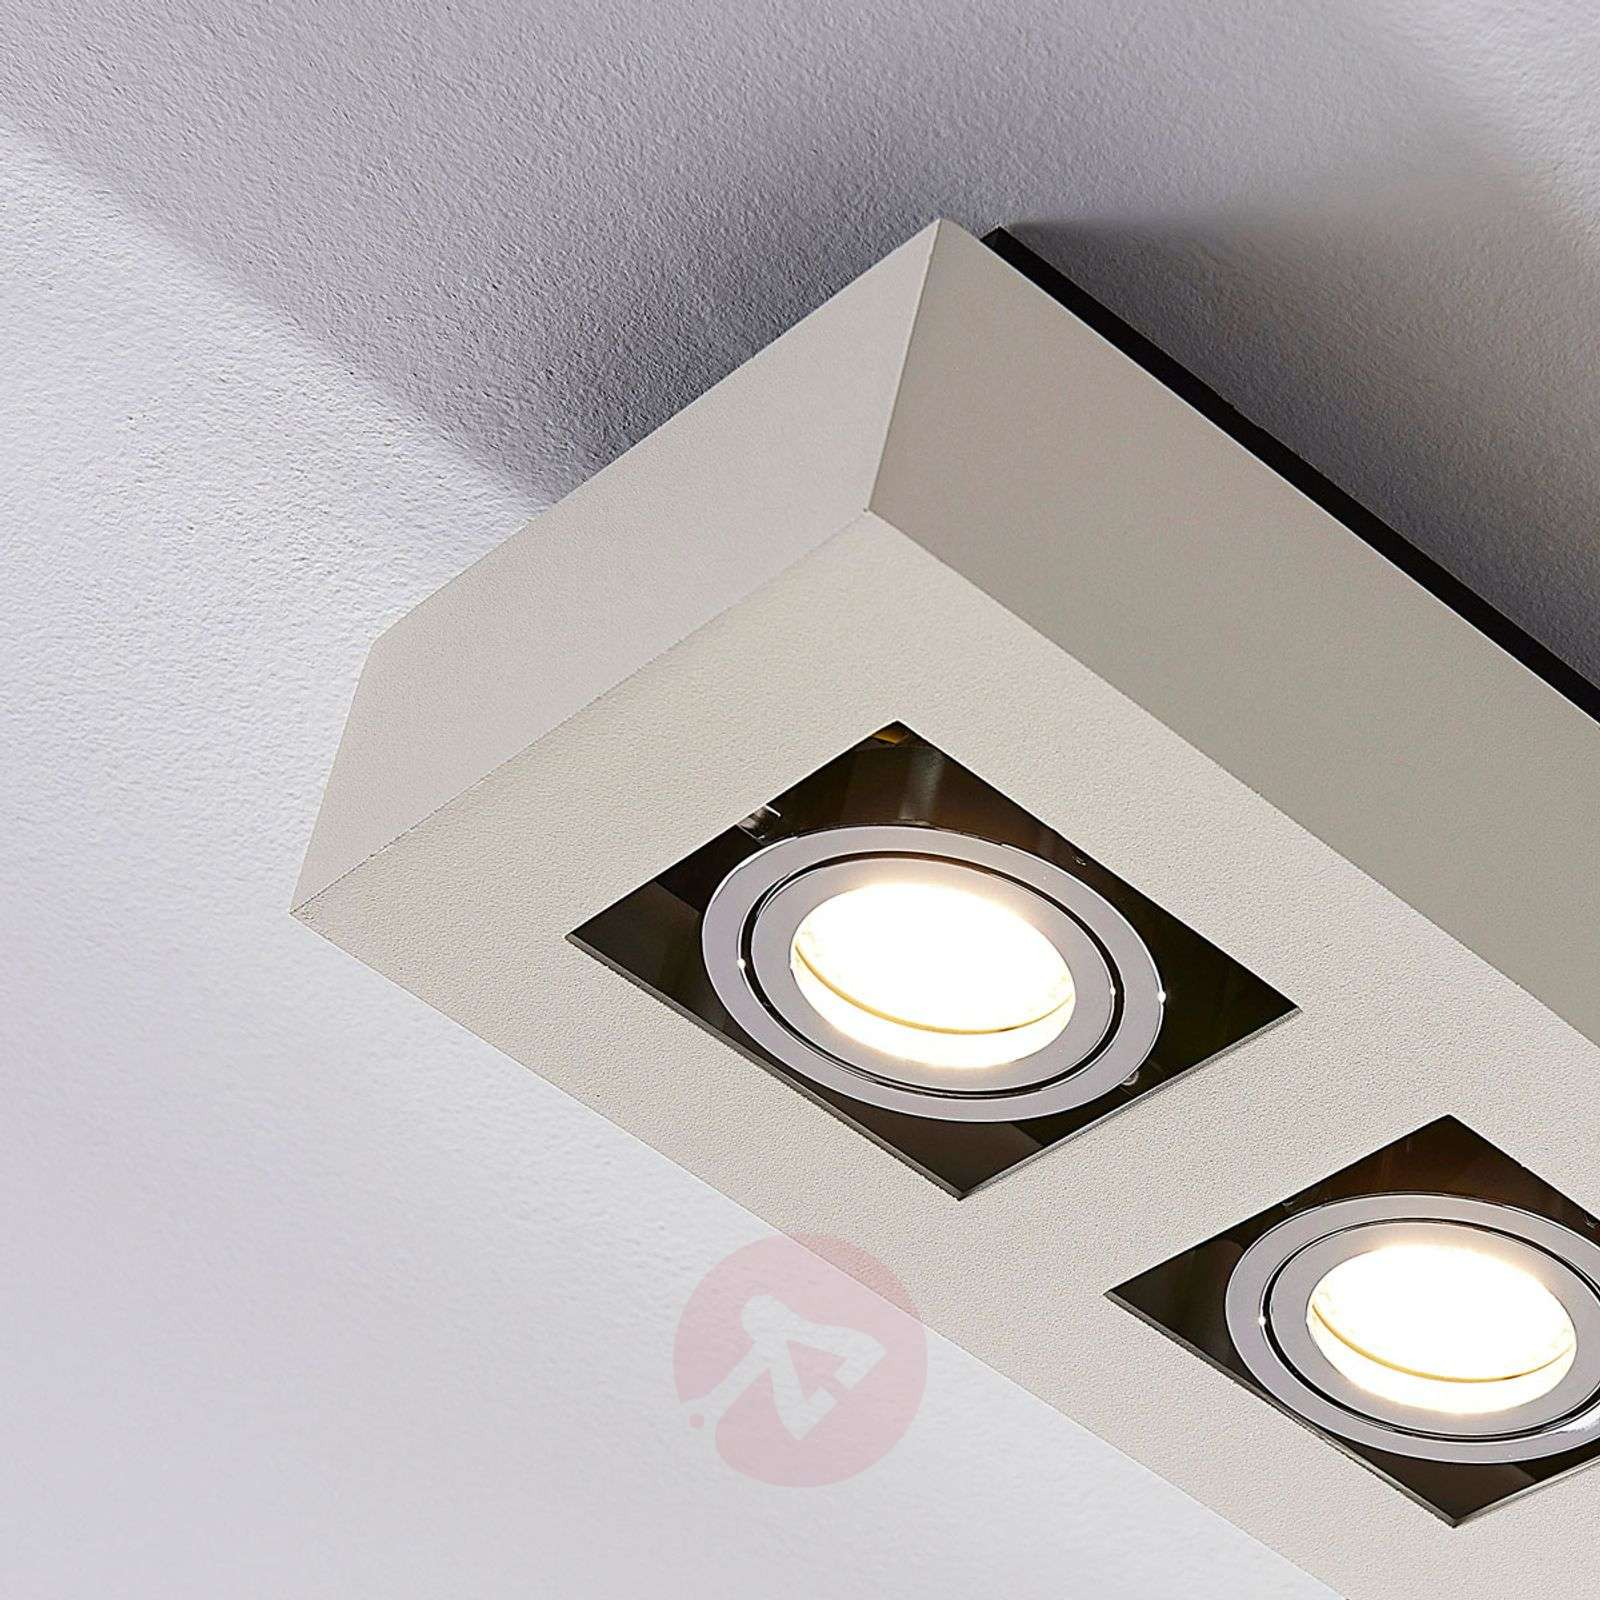 3-lamps LED-plafondlamp Vince in wit-9620458-01